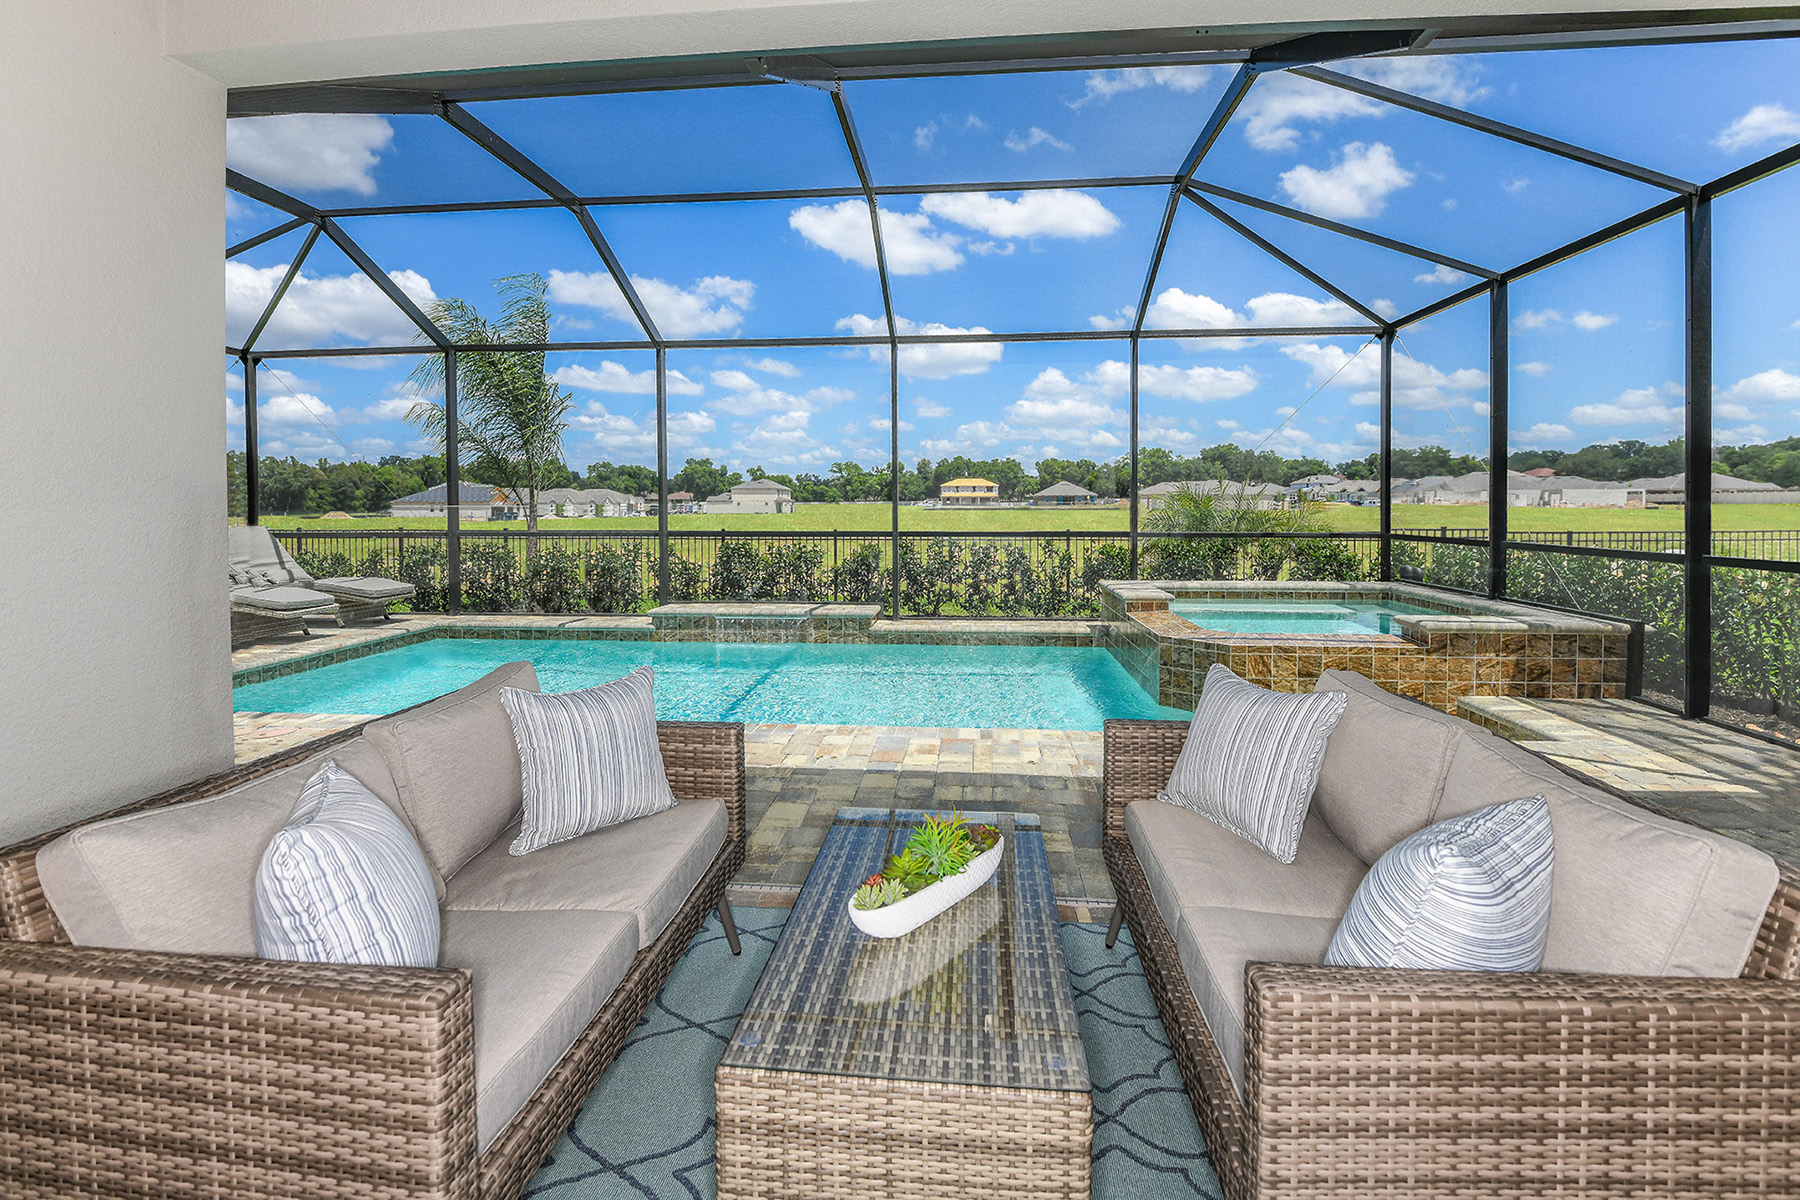 Coquina II Plan WaterFeatures at Wellen Park - Renaissance in Venice Florida by Mattamy Homes